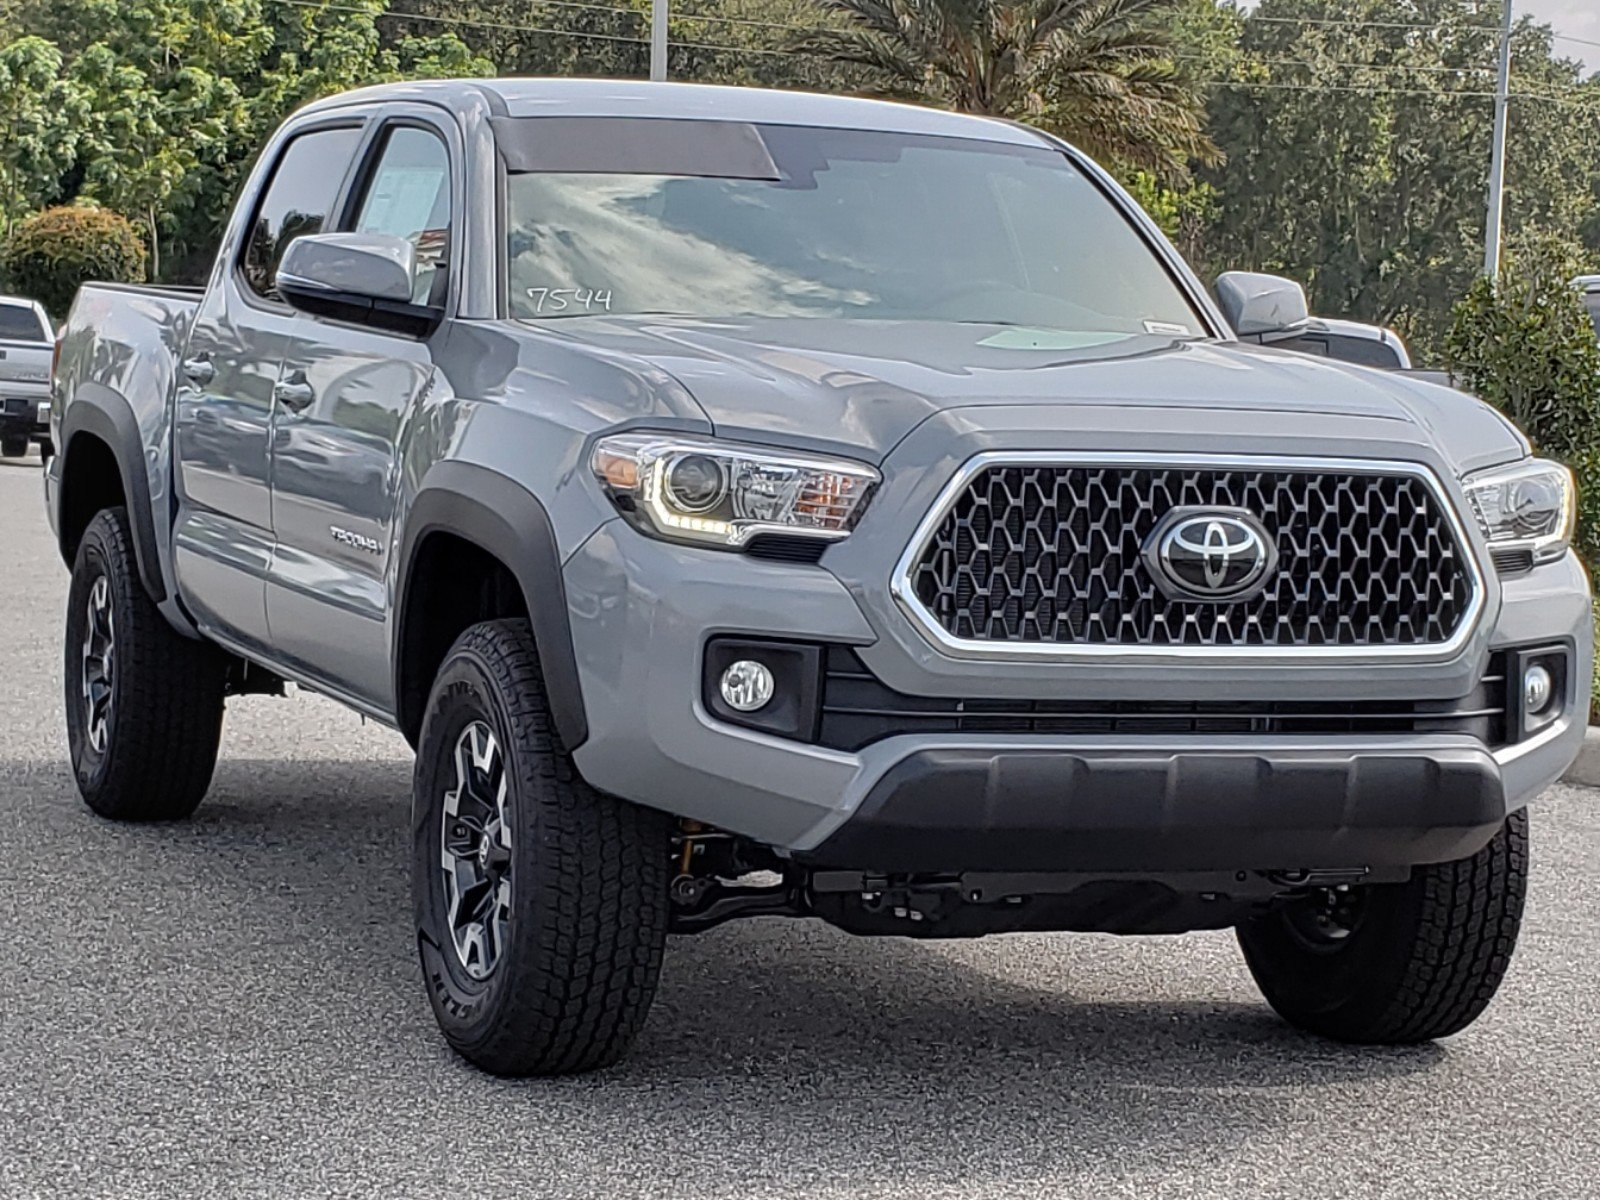 2017 tacoma trd off road. Black Bedroom Furniture Sets. Home Design Ideas